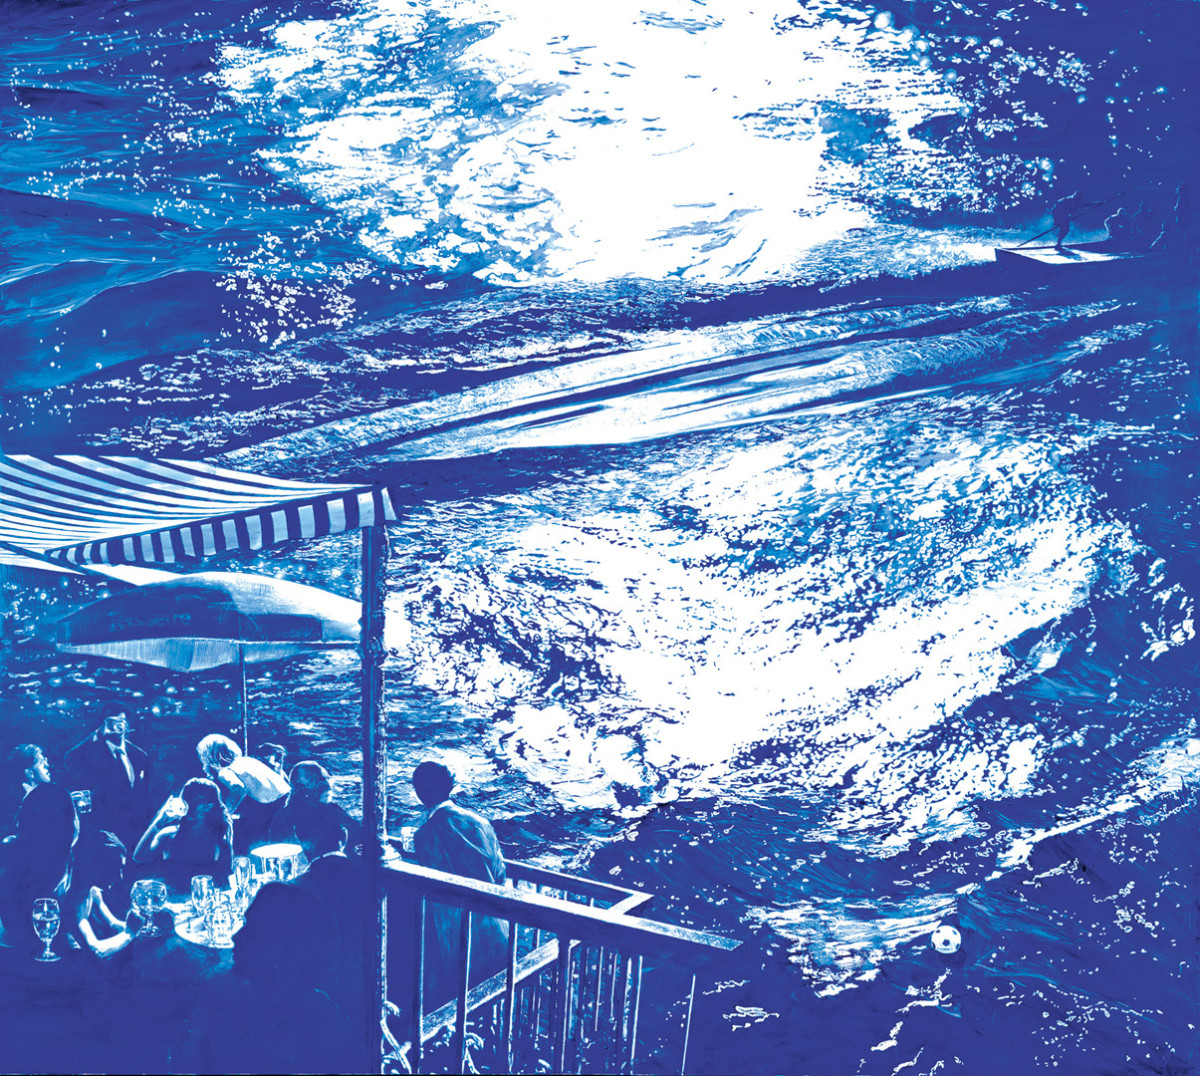 Wake by Mark Tansey, 2003 (image via The Broad Museum)